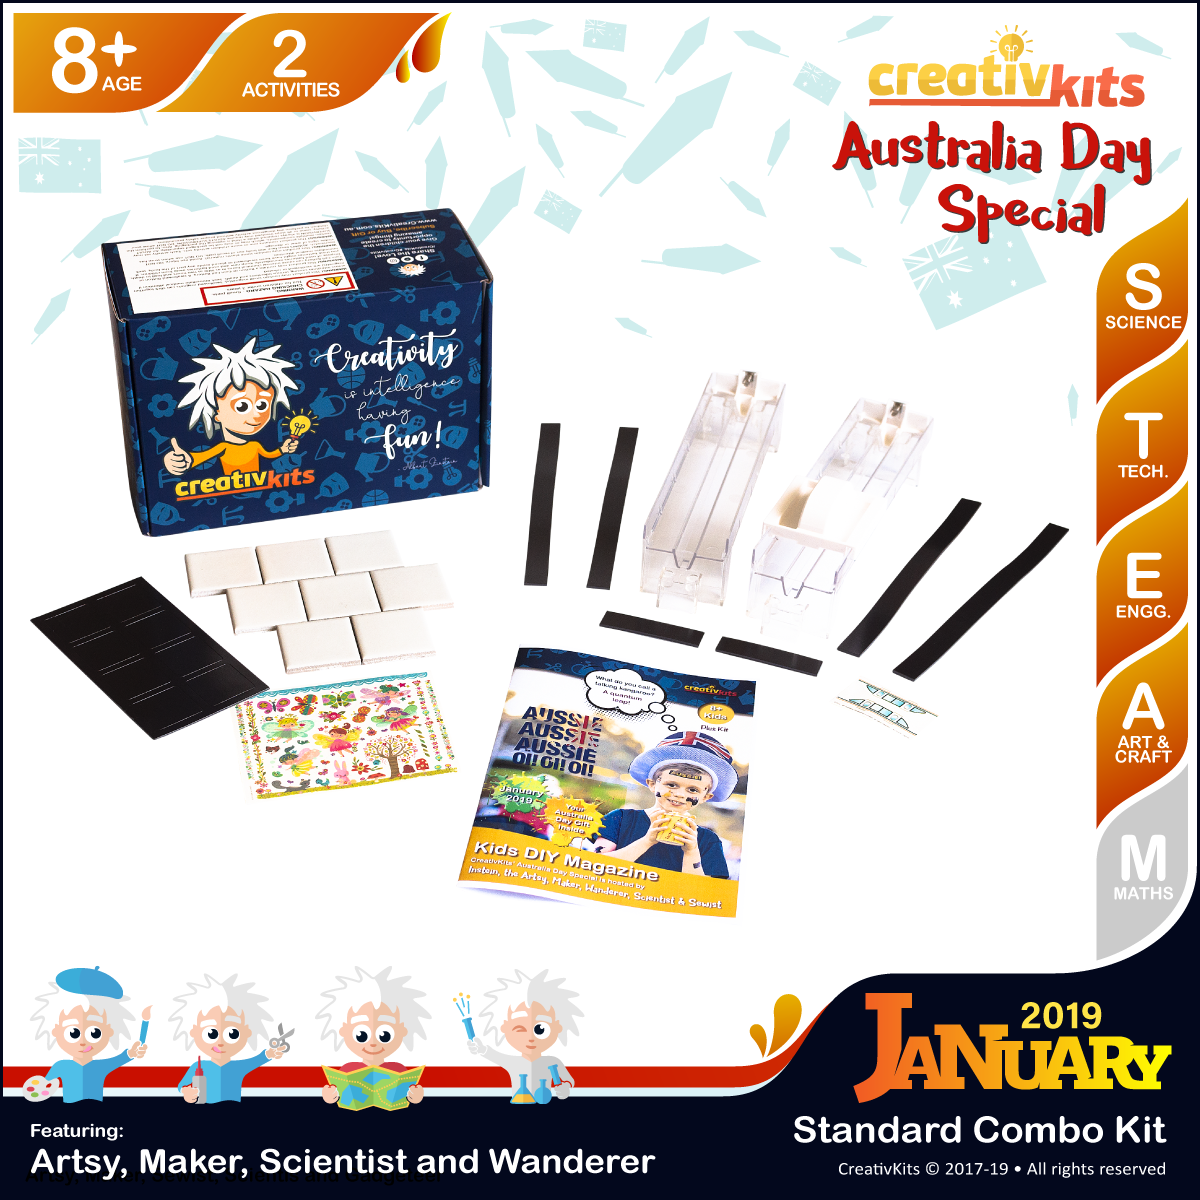 January Standard Combo Kit • Age 8 plus • Magic Transfer Fridge Magnets & Making Maglev Train Model